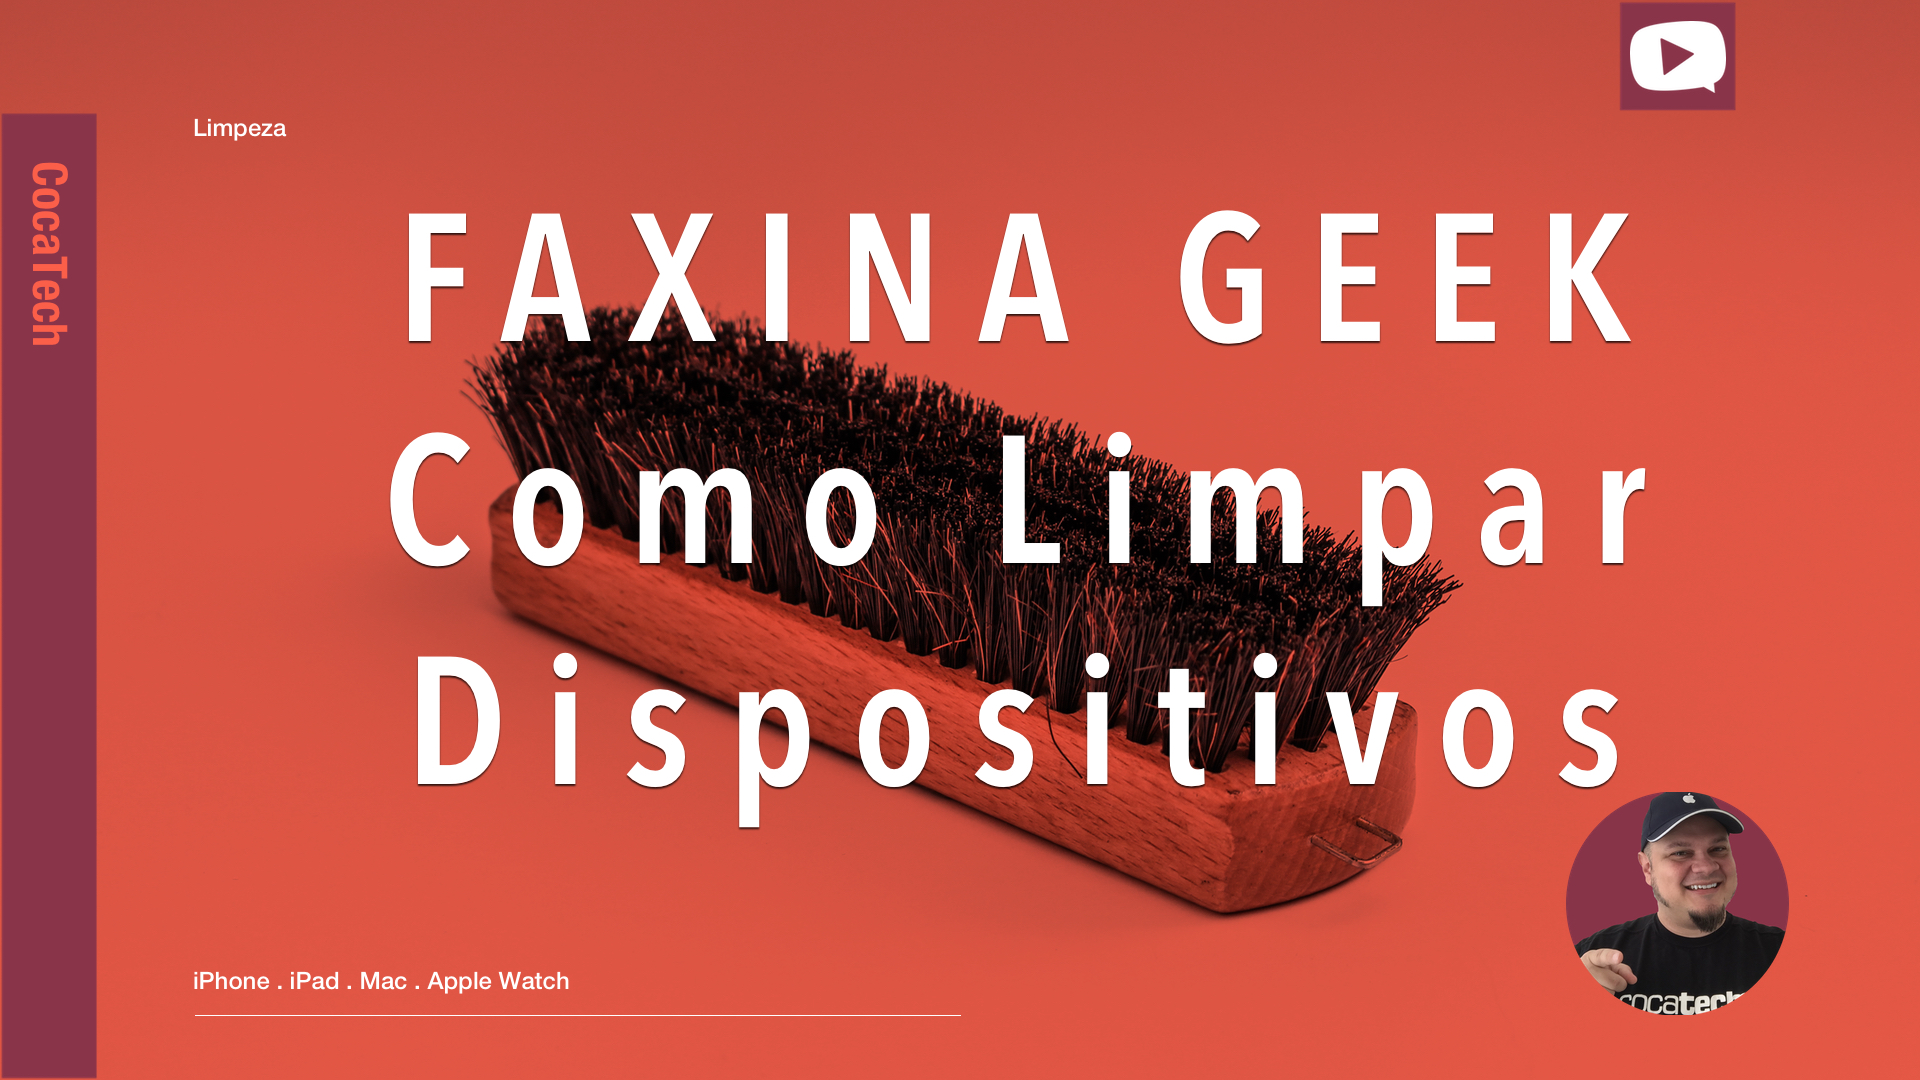 Photo of FAXINA GEEK – Como você limpa o seu iPhone?